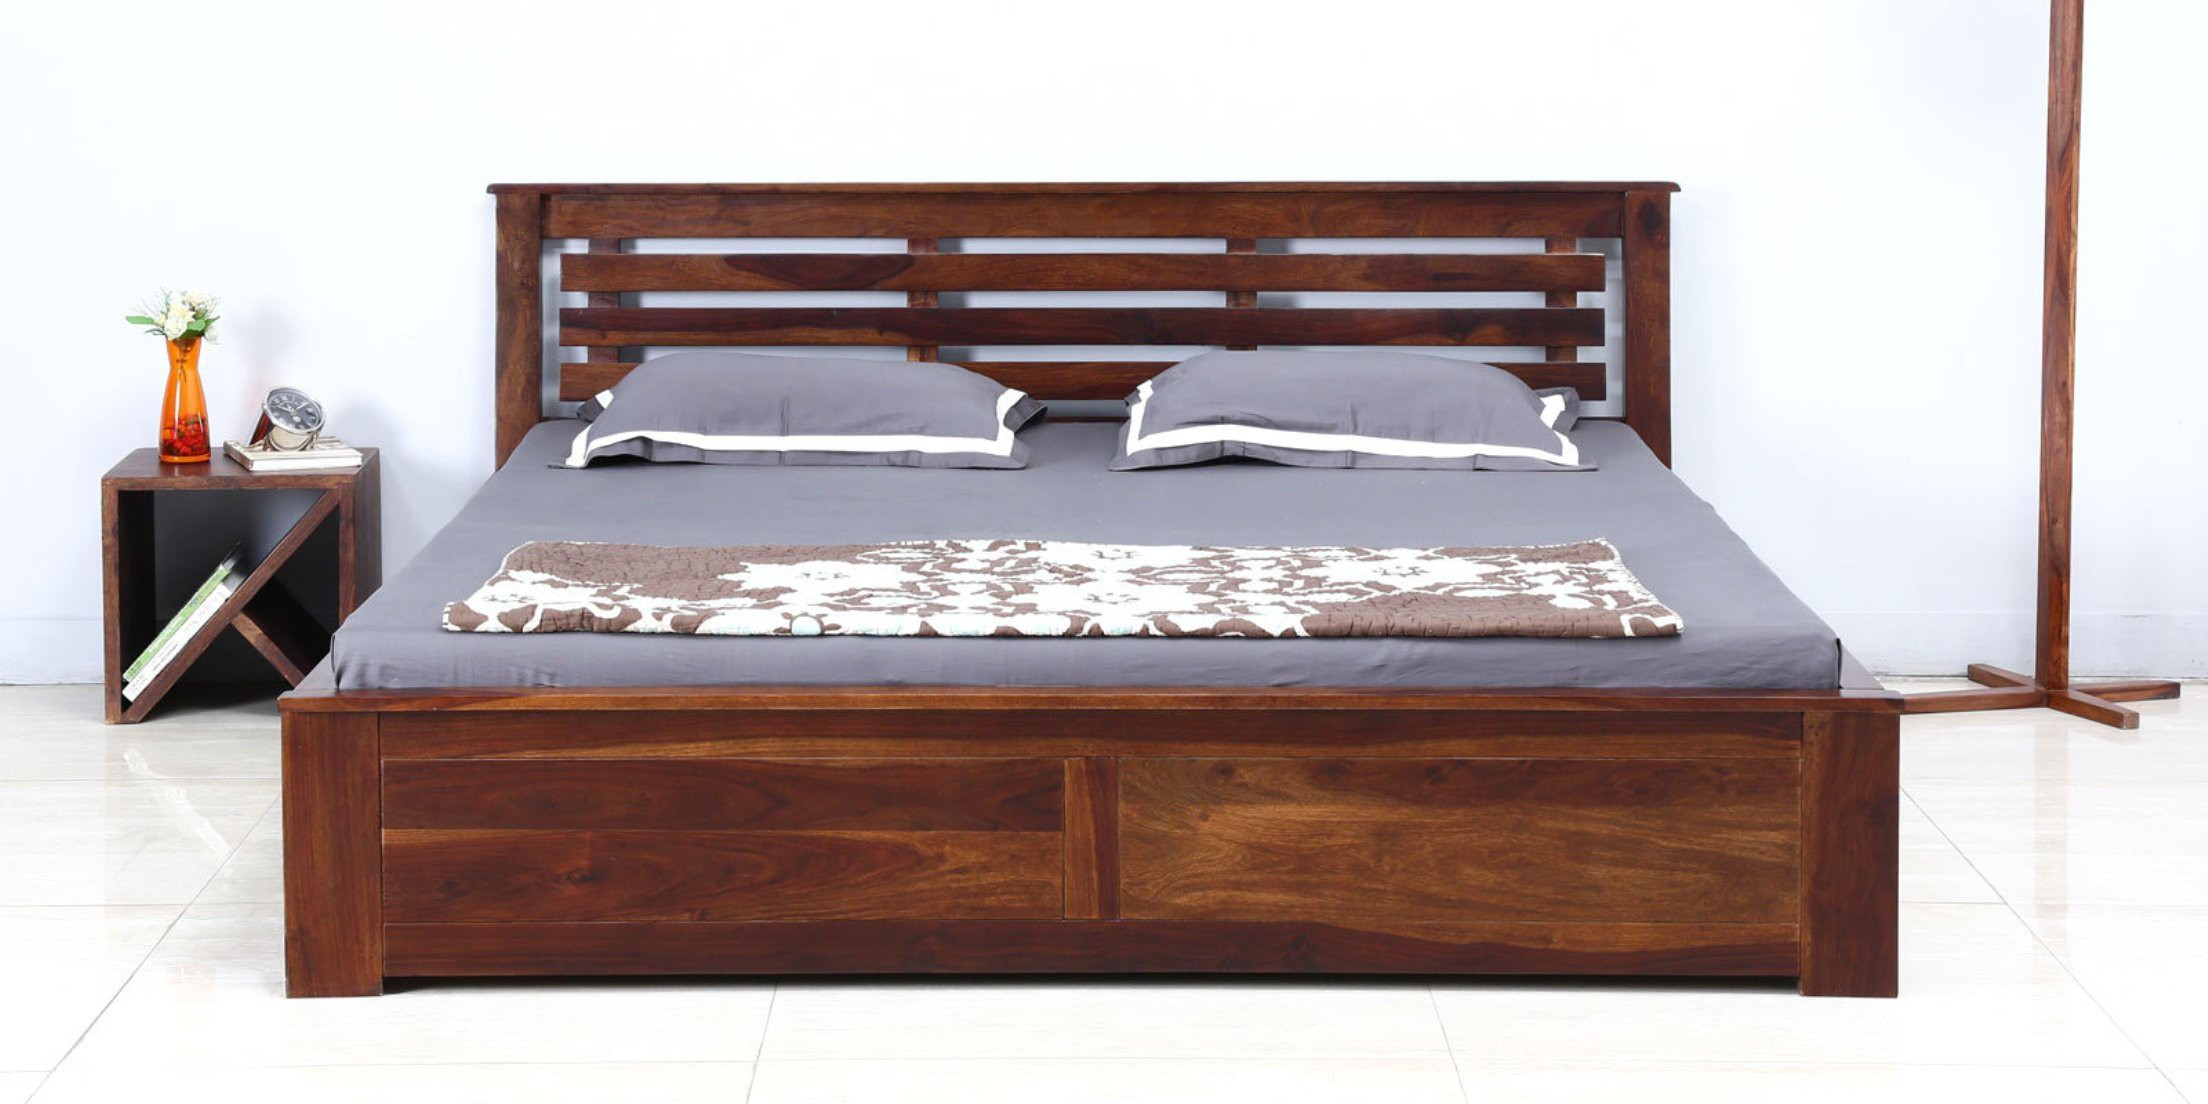 View Amaani Furniture's Solid Wood Queen Bed With Storage(Finish Color -  Teak Finish) Furniture (Amaani Furniture's)